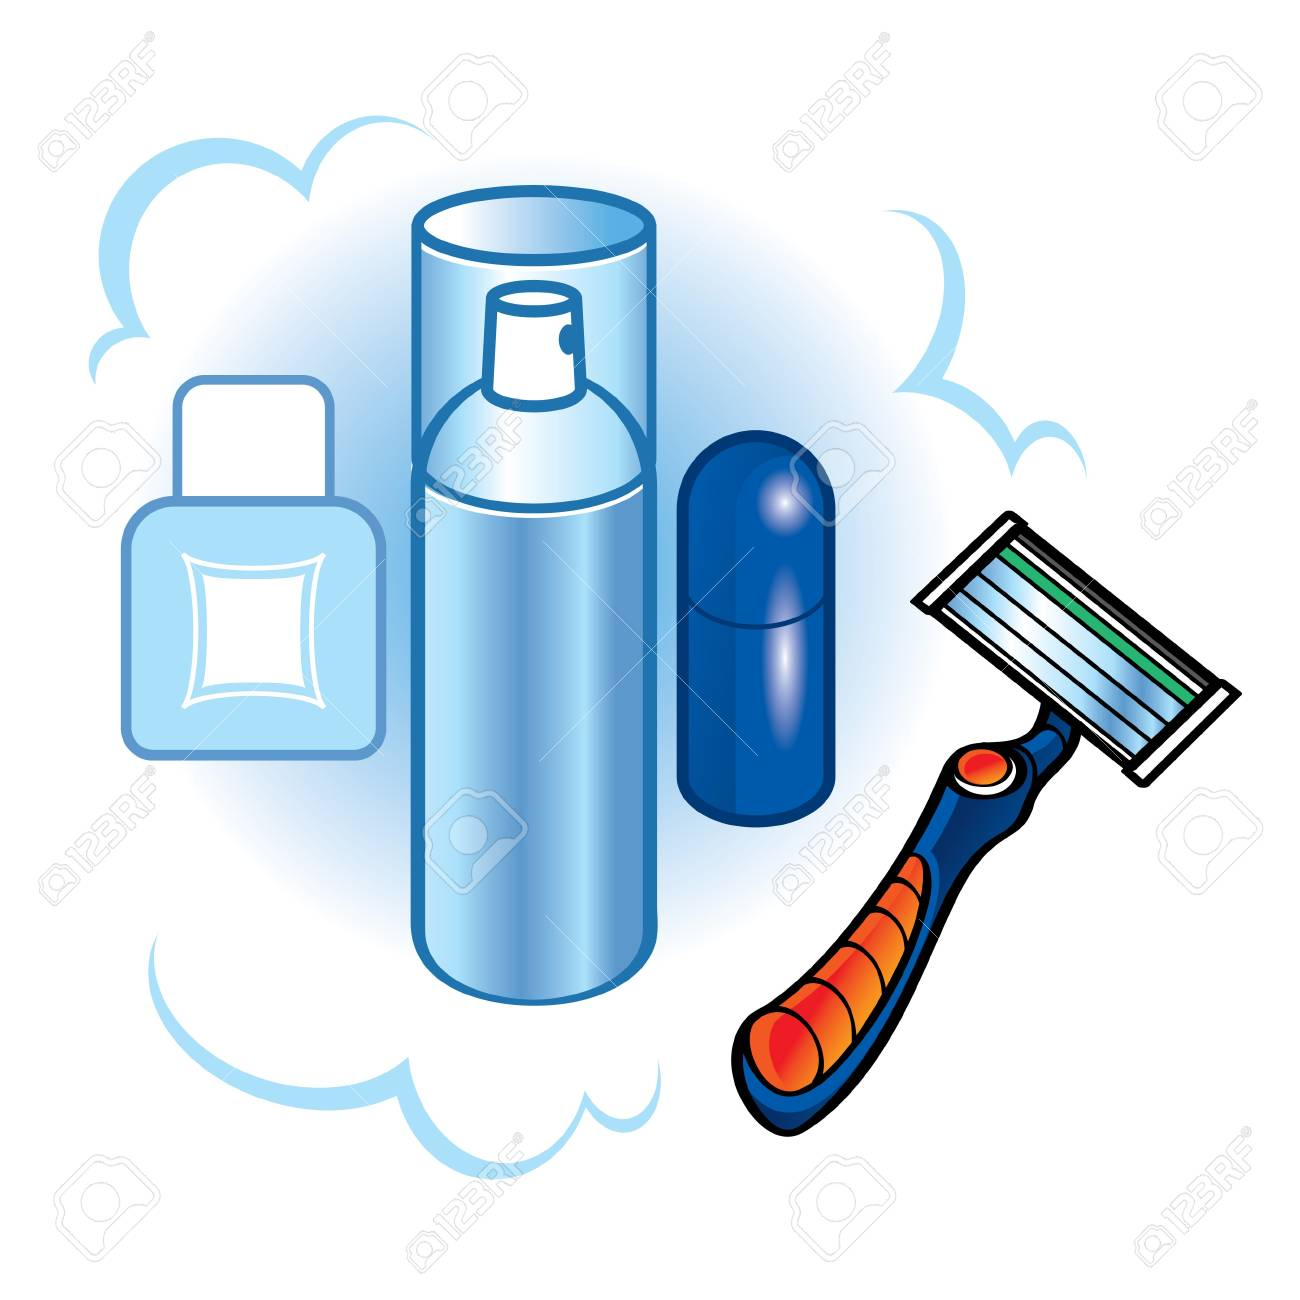 Image result for shave face clipart